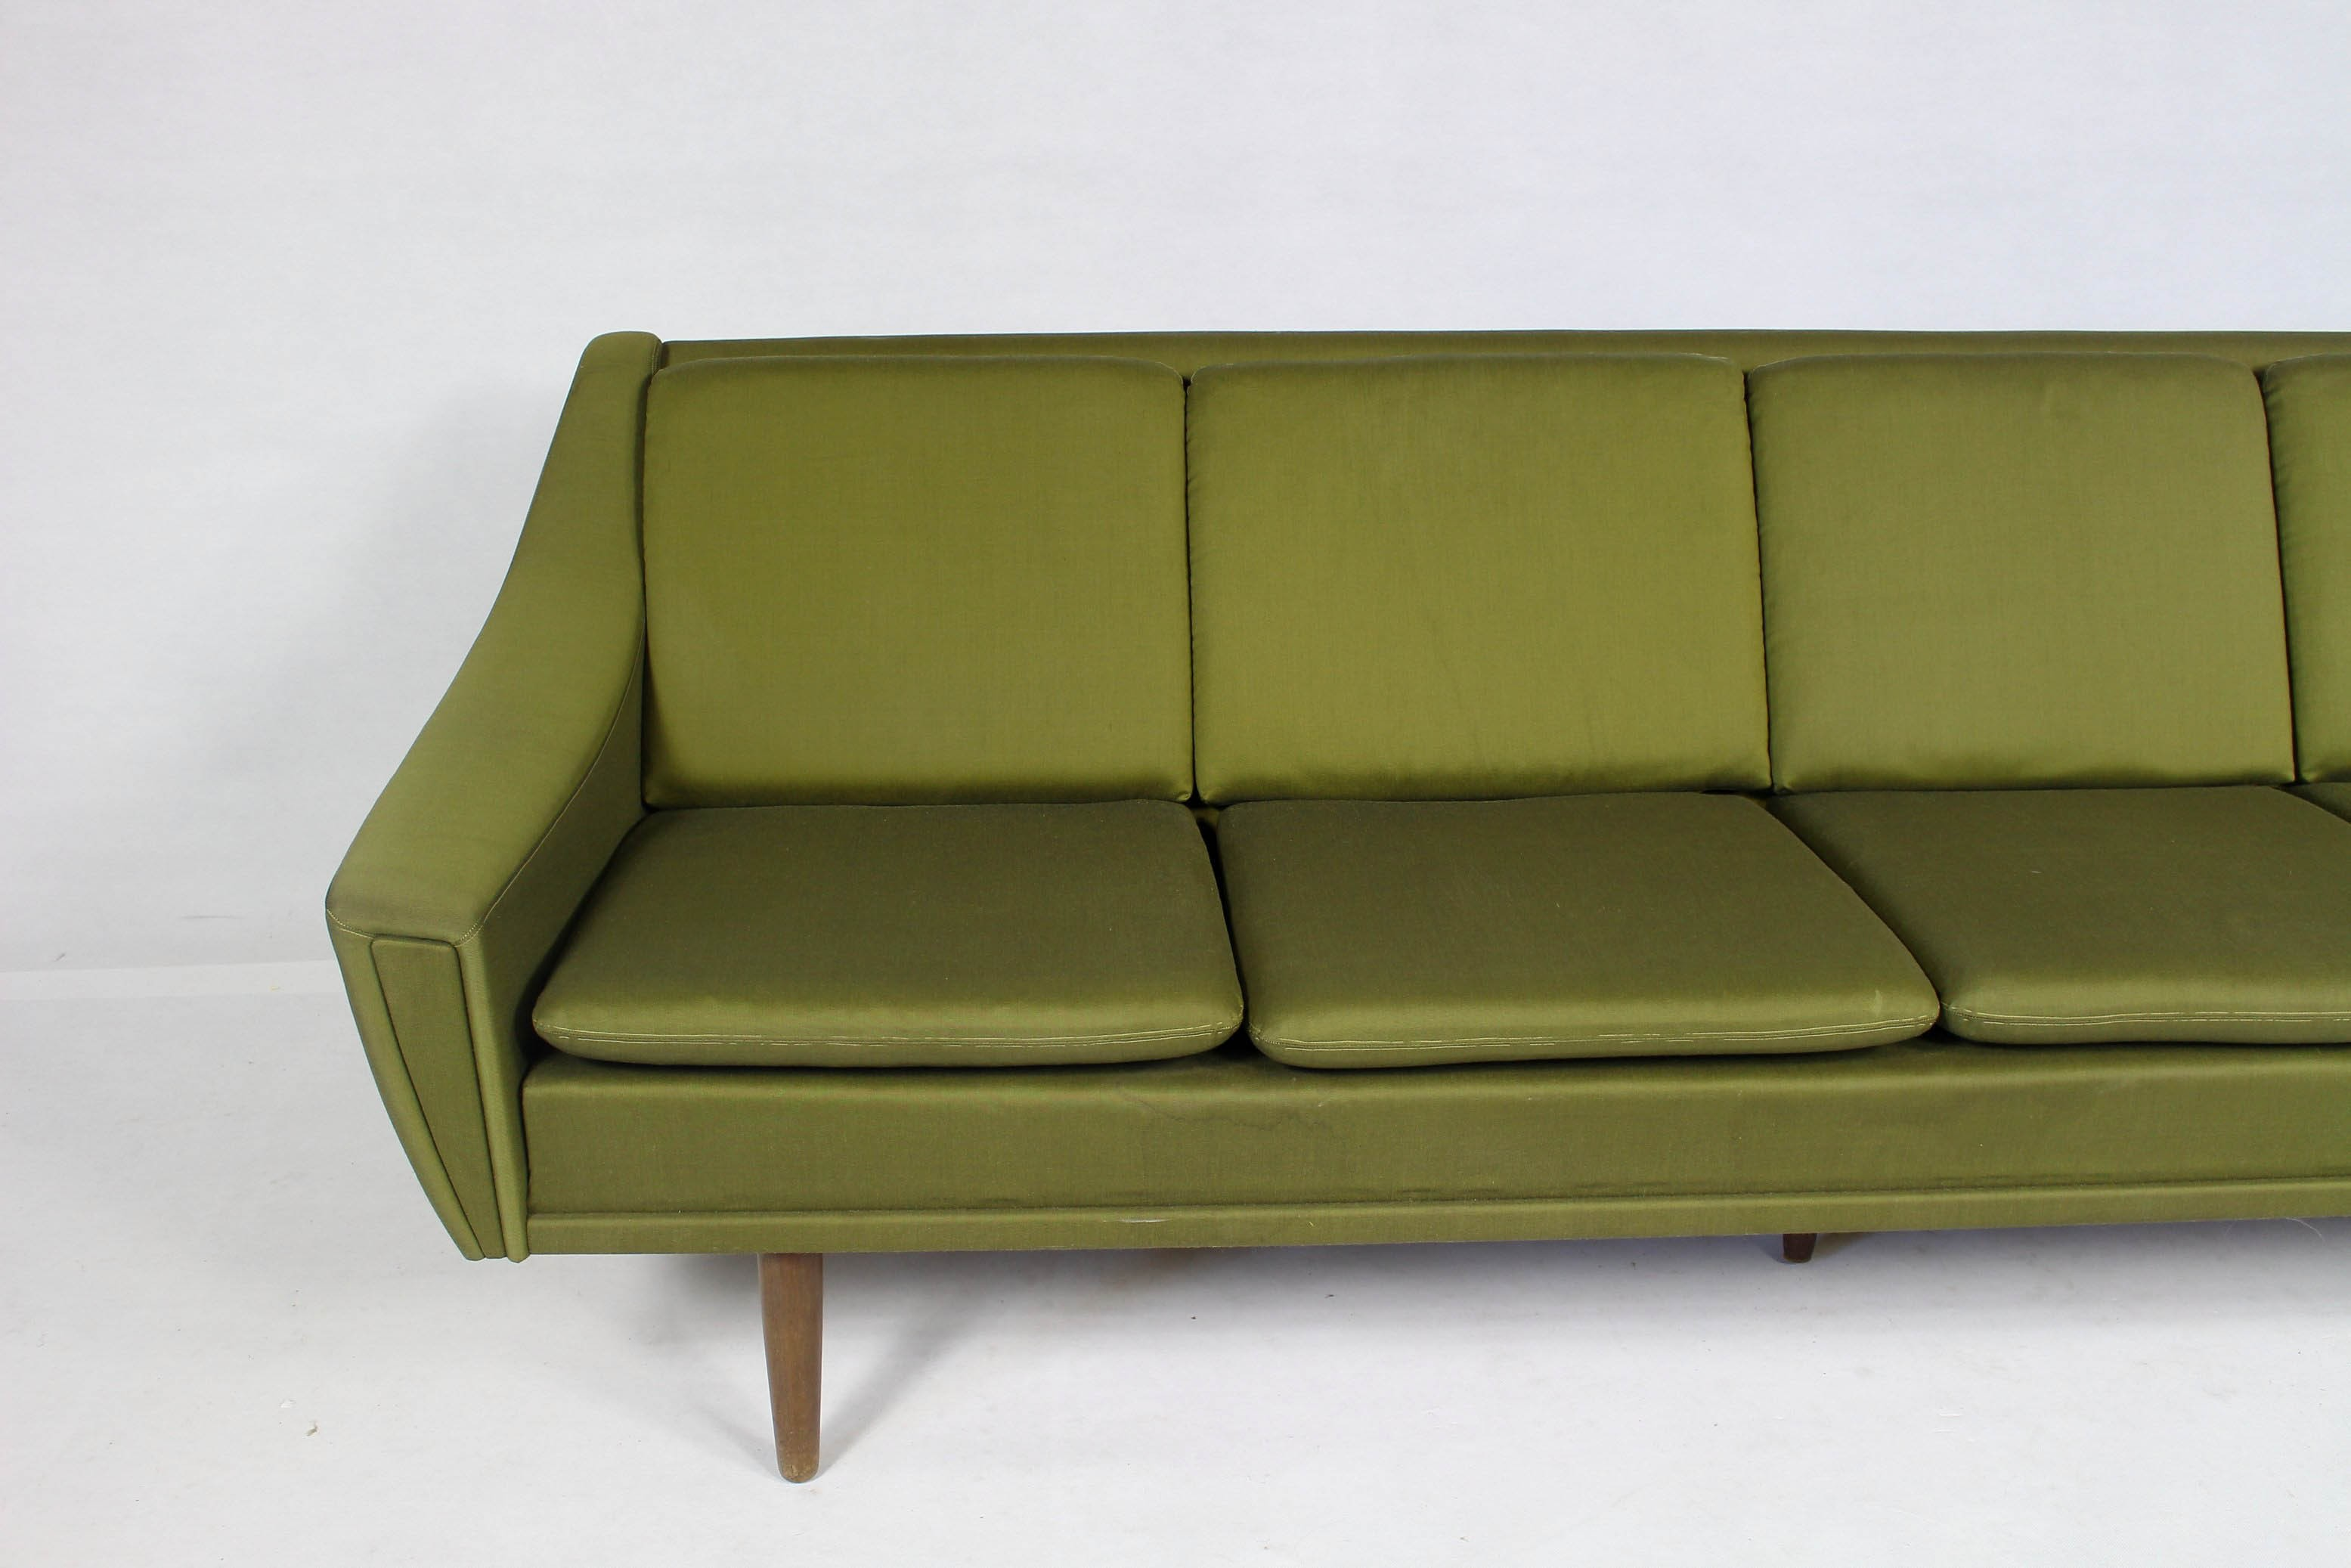 Danish Mid Century Modern Sofa 1960s Design Market ~ Tan Leather Mid Century Sofa